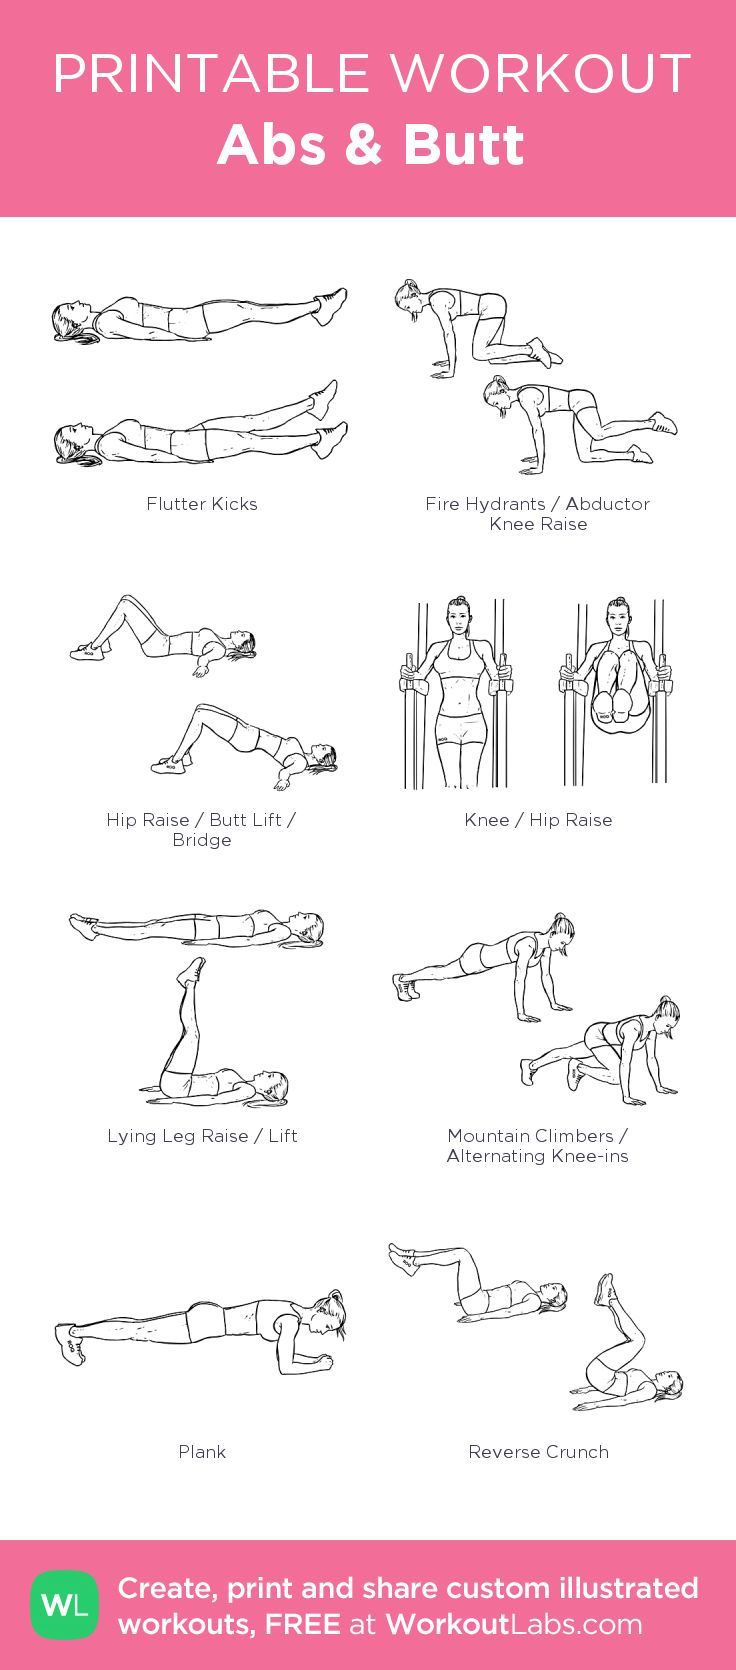 Abs & Butt: my visual workout created at WorkoutLabs.com • Click through to cu…